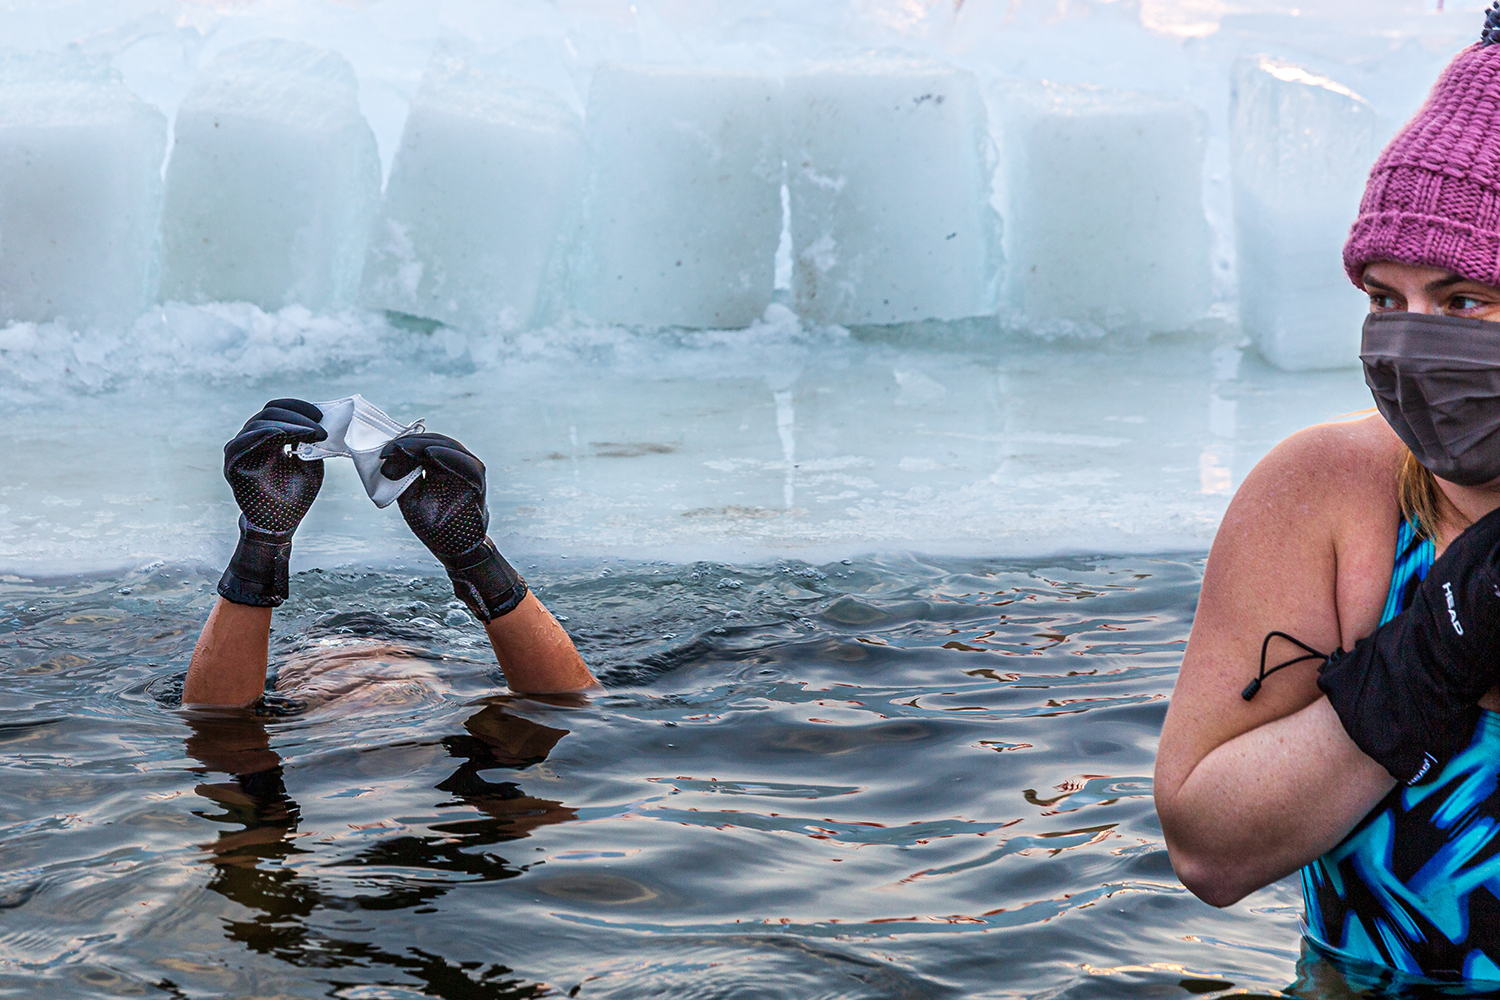 """Members of a """"submergents"""" group take the plunge into 37-degree Fahrenheit water in a pool carved from the ice at Lake Harriet in Minneapolis, Minnesota, on Jan. 30. KEREM YUCEL/AFP via Getty Images"""